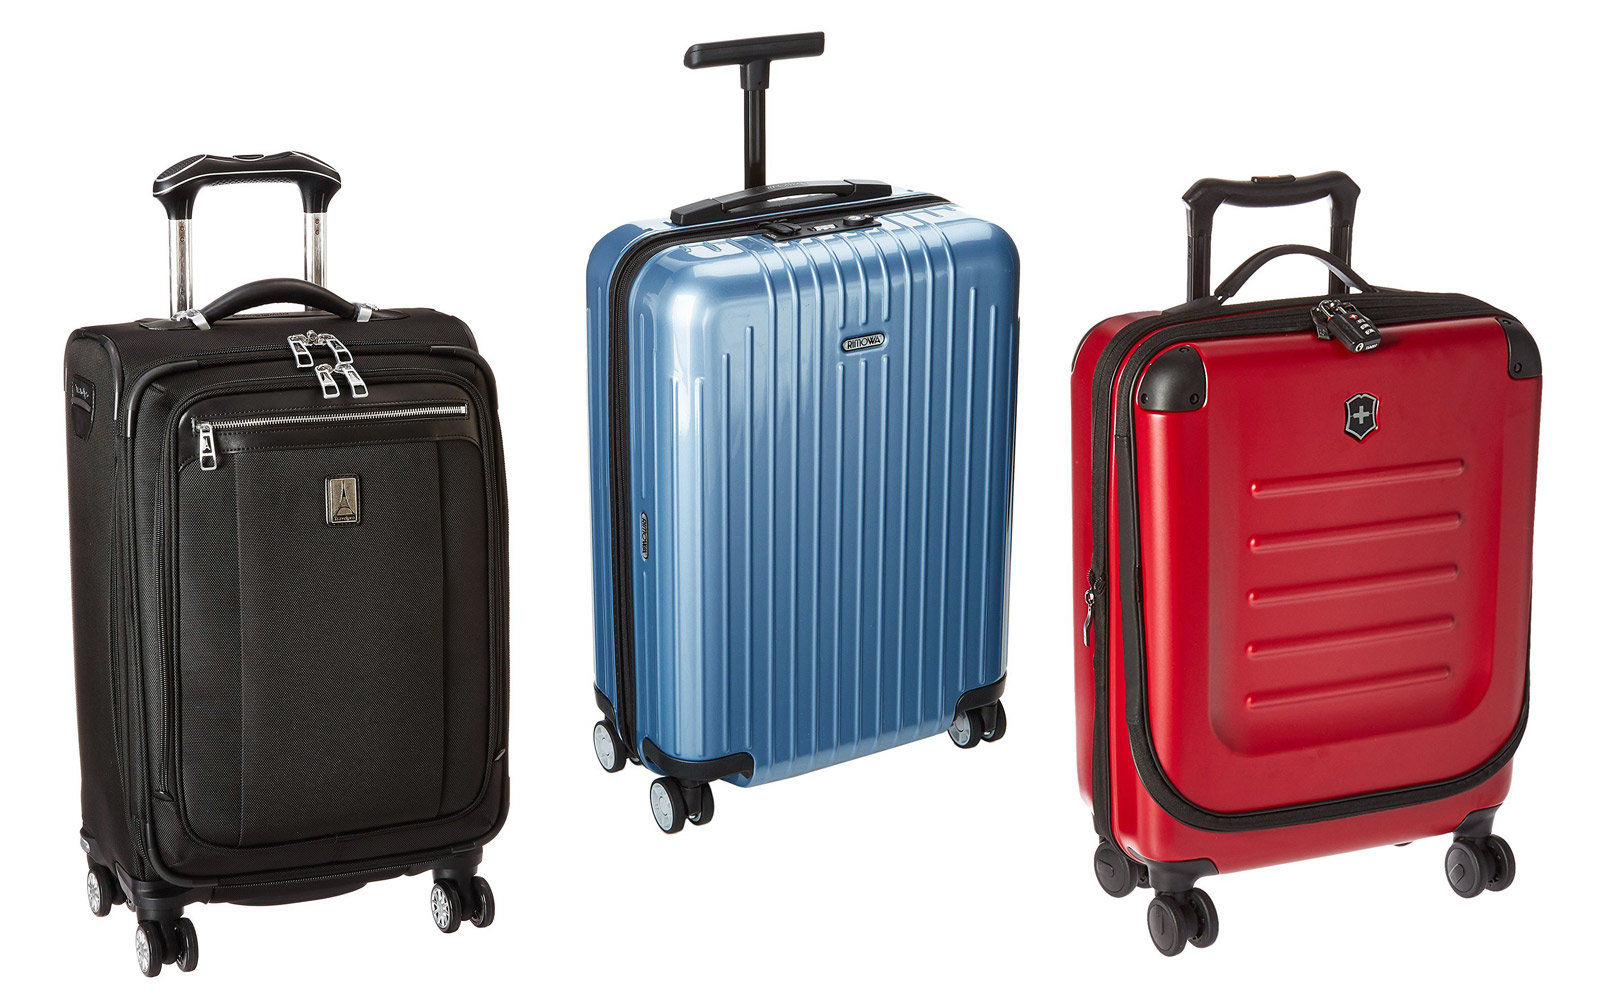 Best Carry-On Luggage